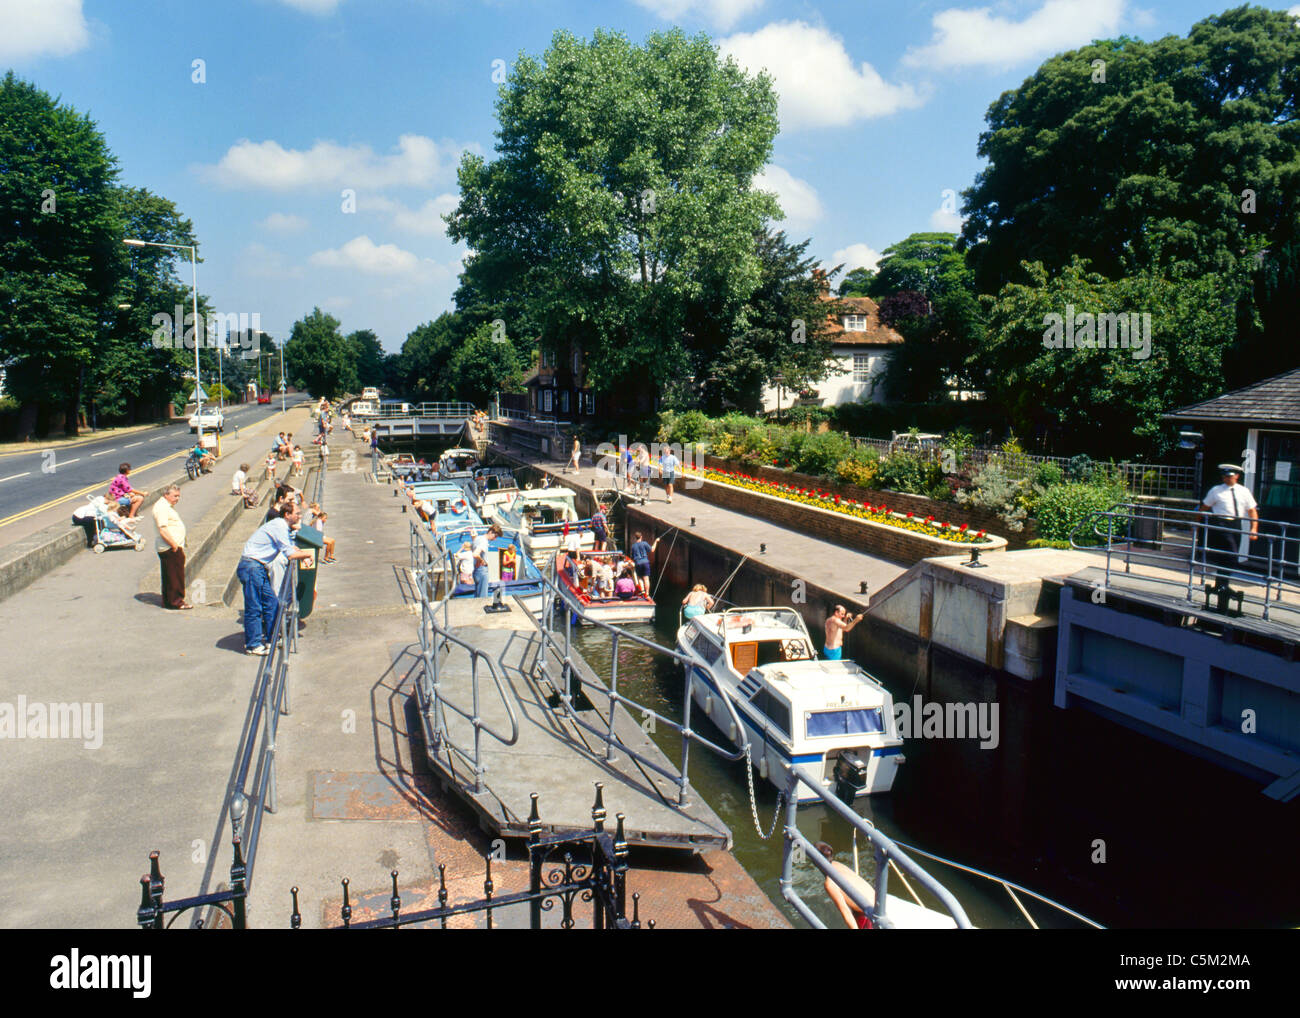 July 1993: Boats passing through a busy Boulters Lock, River Thames, Maidenhead, Berkshire, England, UK, Europe Stock Photo